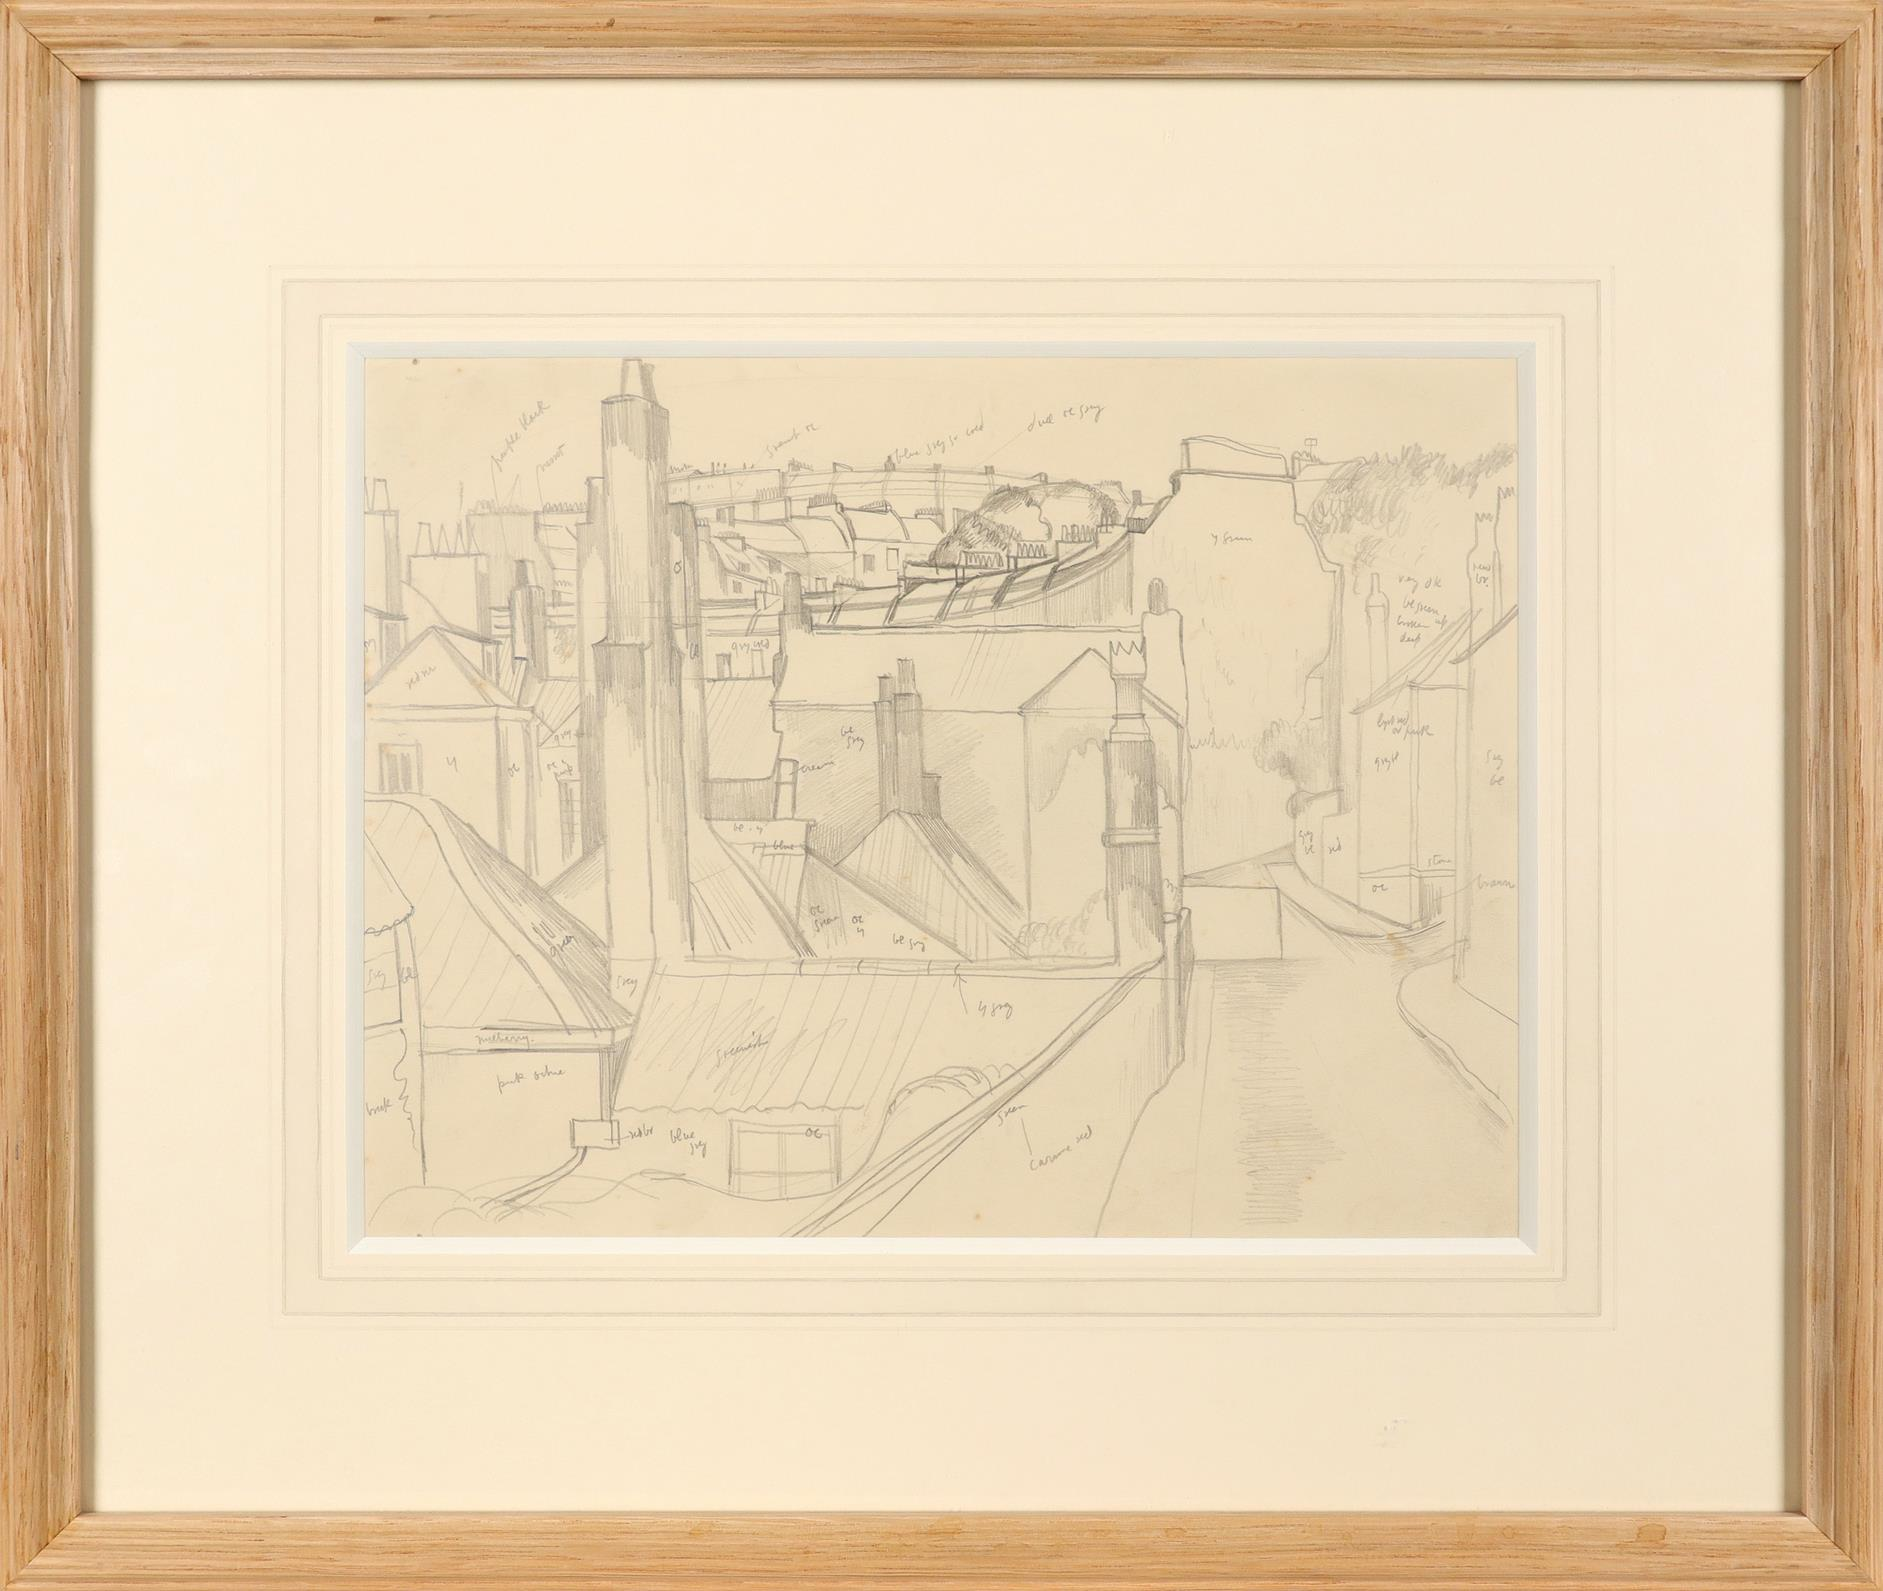 ‡John Nash CBE, RA (1893-1977) Townscape Inscribed throughout with colour notes Pencil 22.3 x 28.7cm - Image 2 of 3